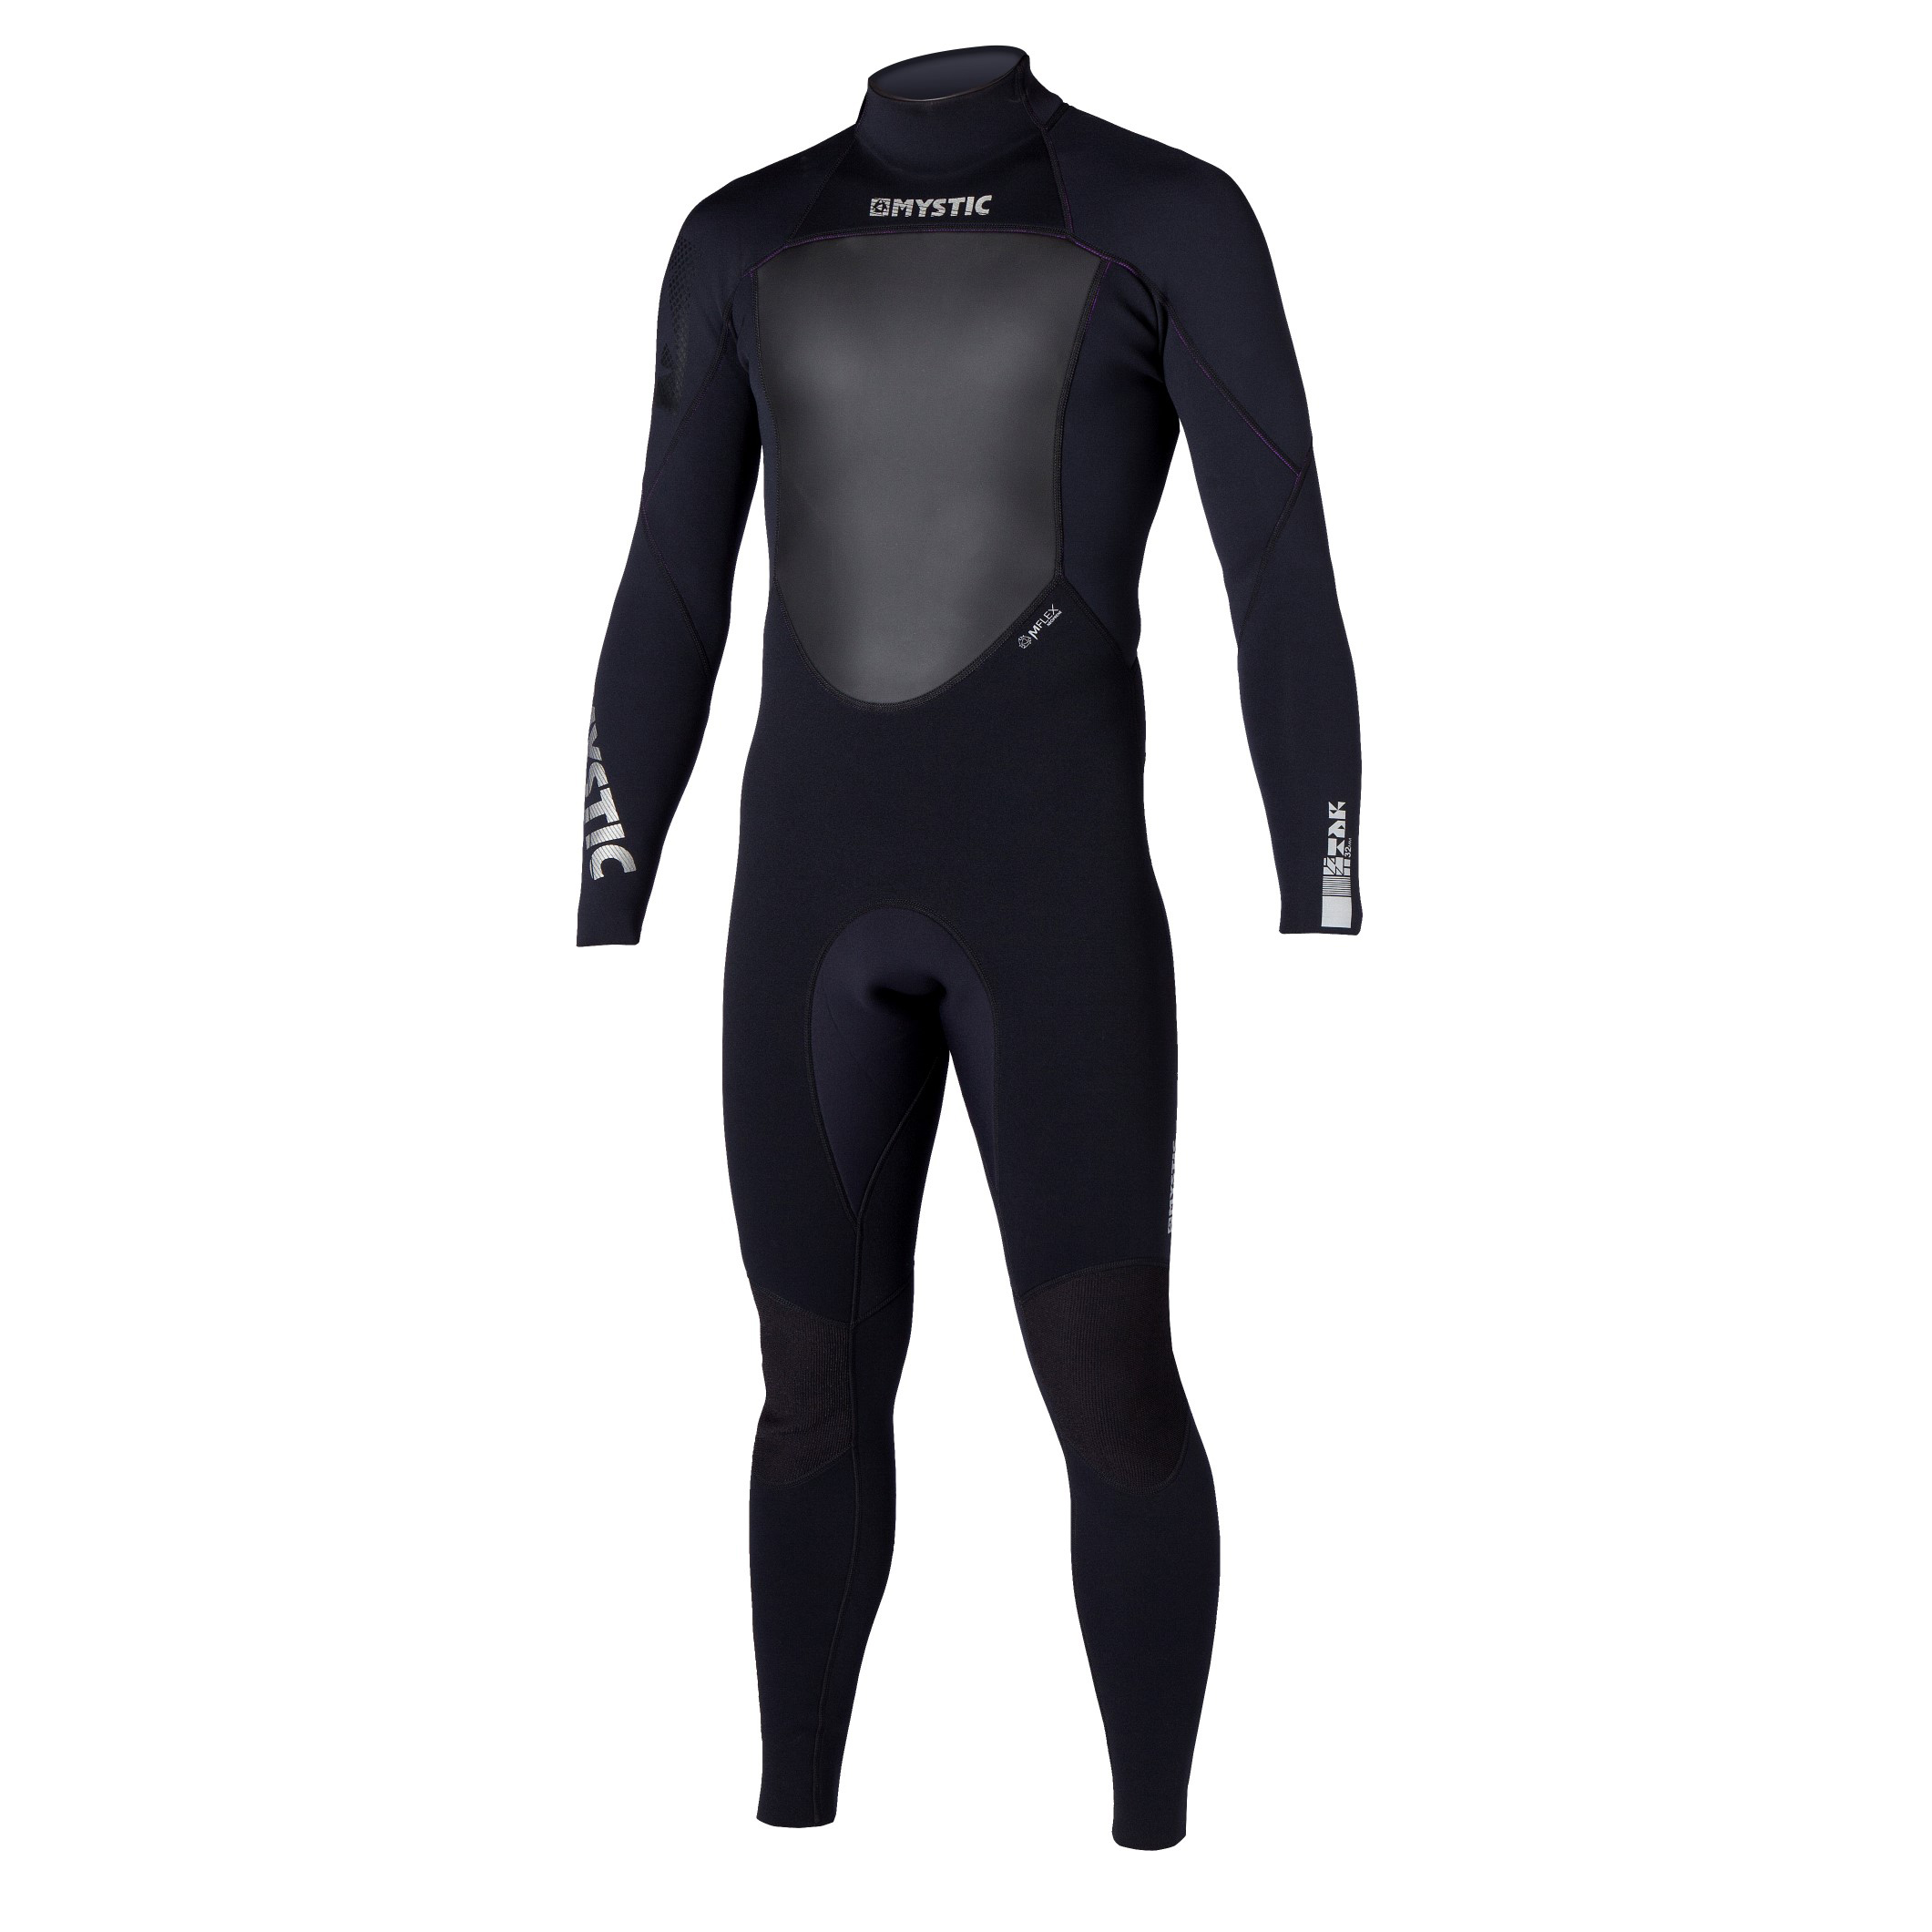 STAR 3/2 D/L FULLSUIT FLATLOCK - BLACK - MEDIUM MYSTIC 2016